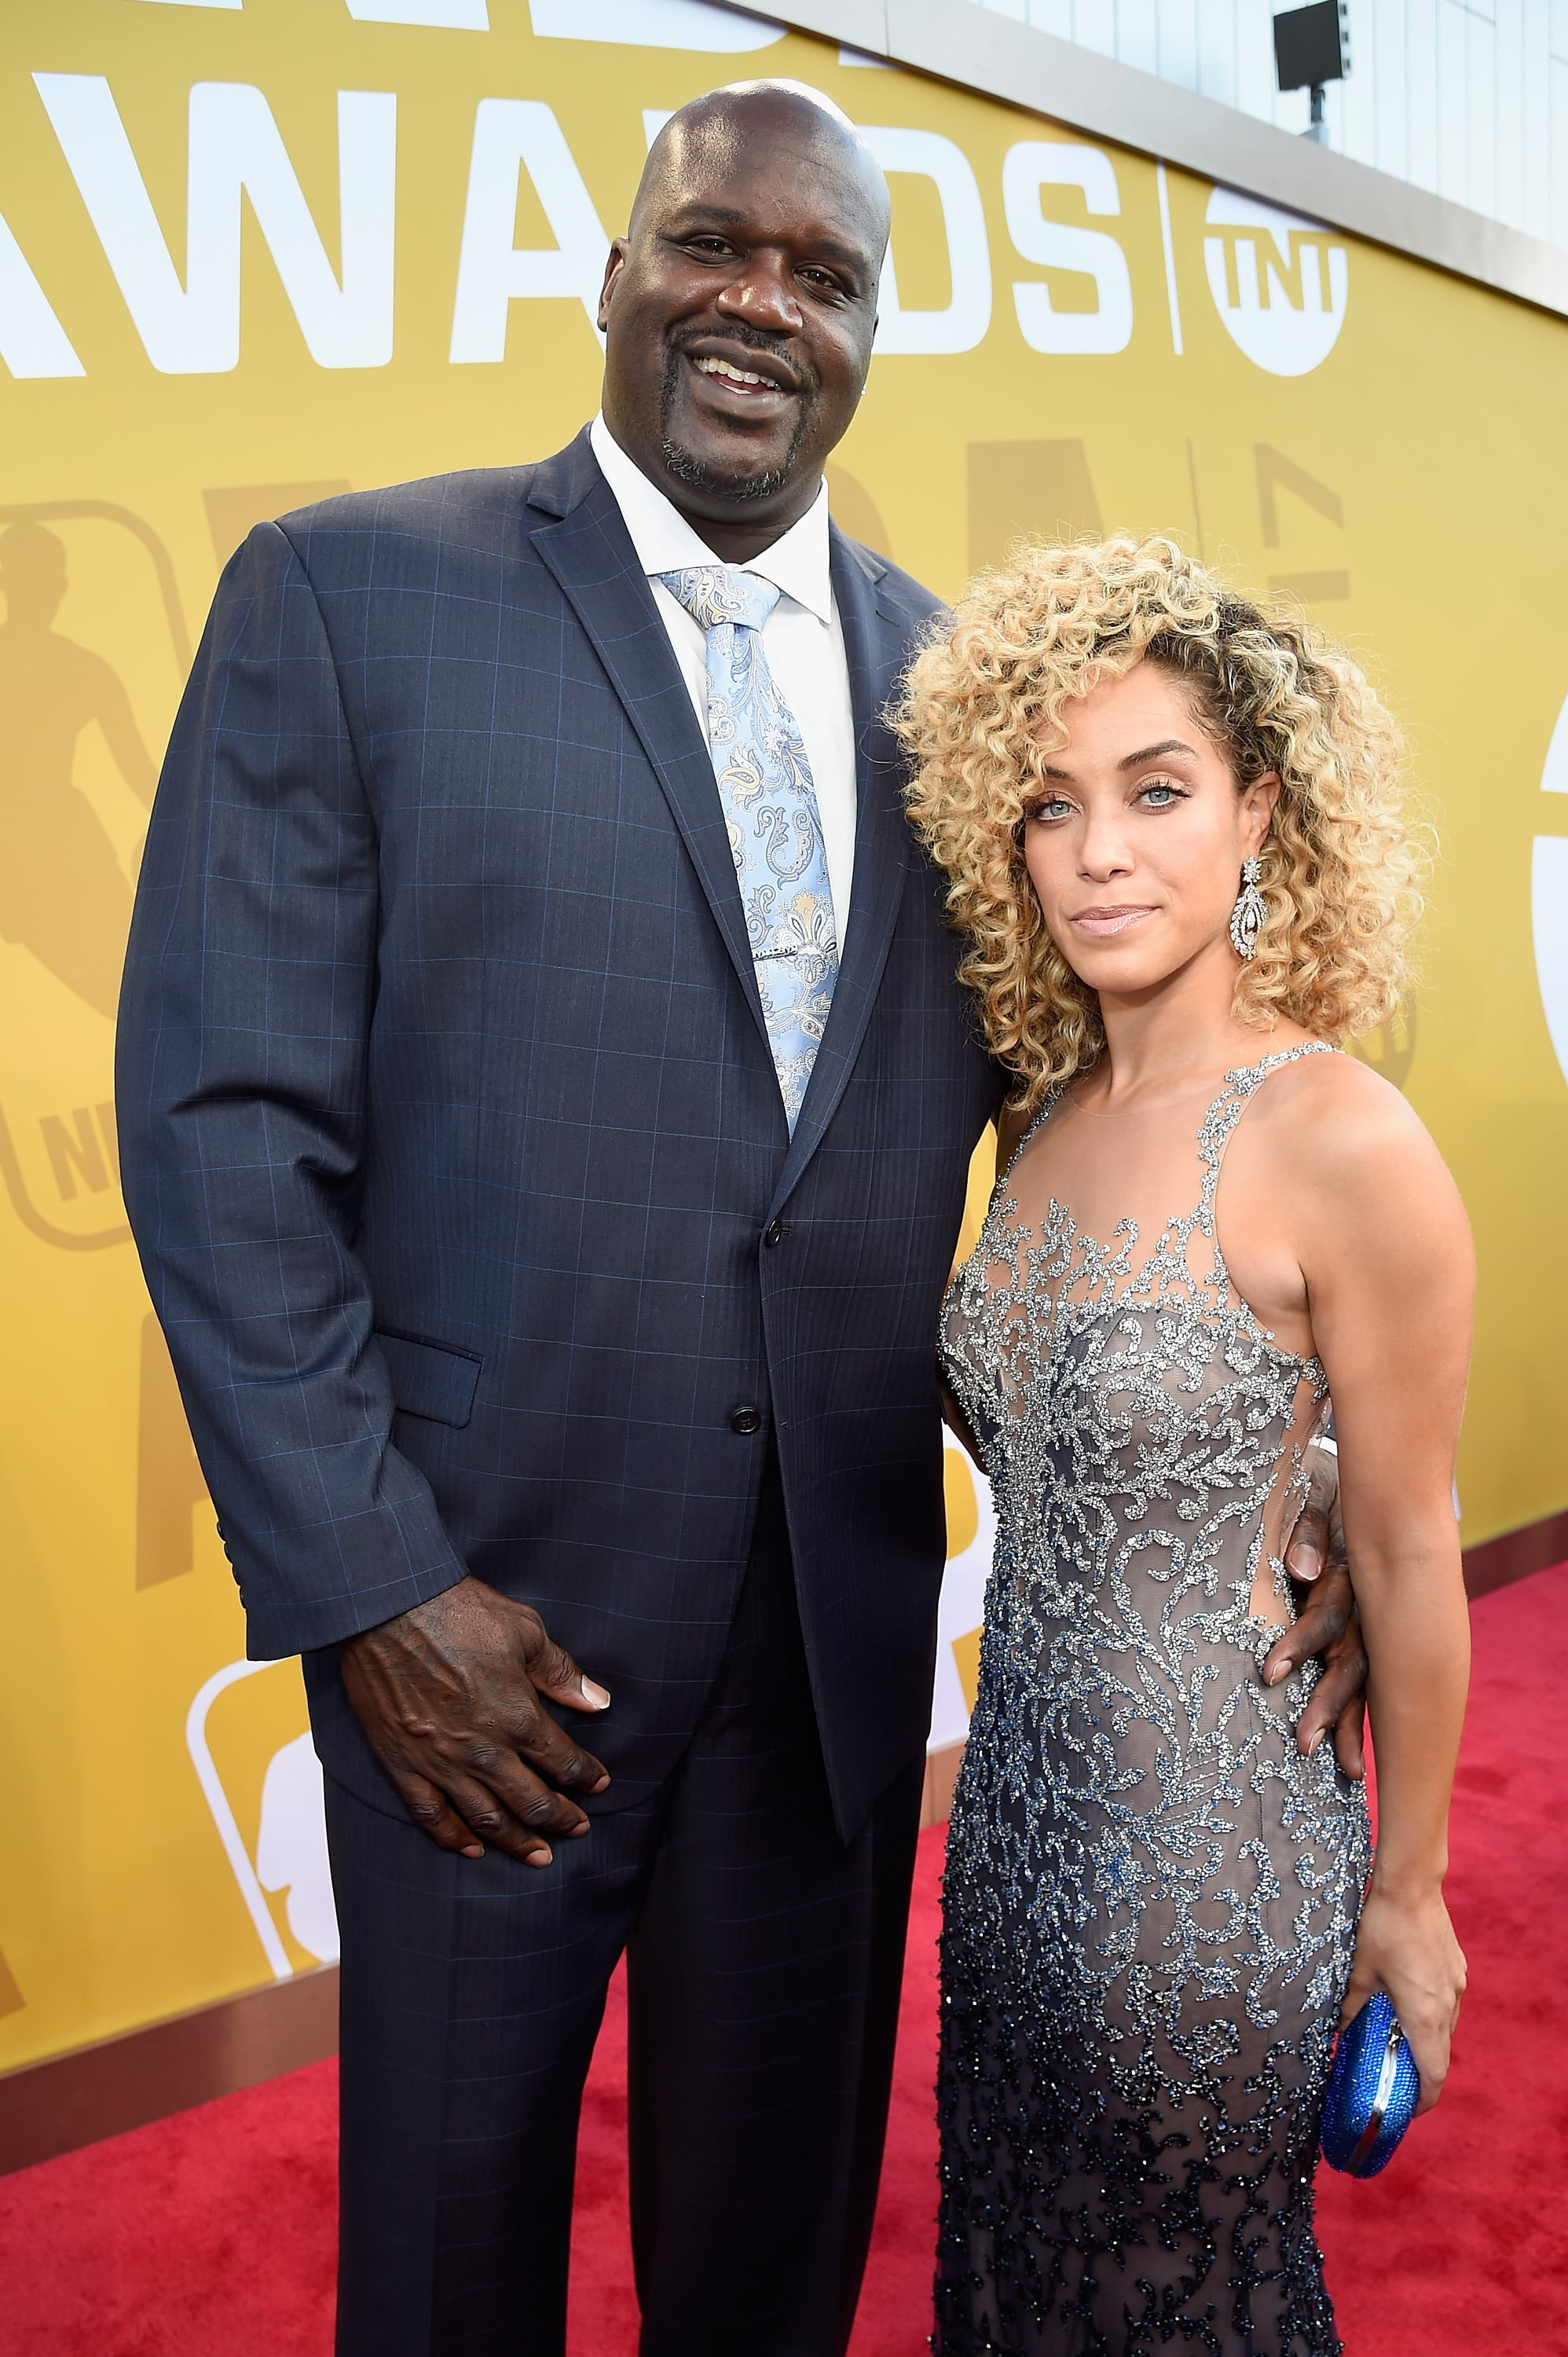 Shaquille O Neal And Laticia Rolle 55 Celebrity Couples We Can T Wait To See Walk Down The Aisle Popsugar Celebrity Photo 9 Listed аt 7 ft 1 in (2.16 m) tall аnd weighing 325 pounds (147 kg). shaquille o neal and laticia rolle 55